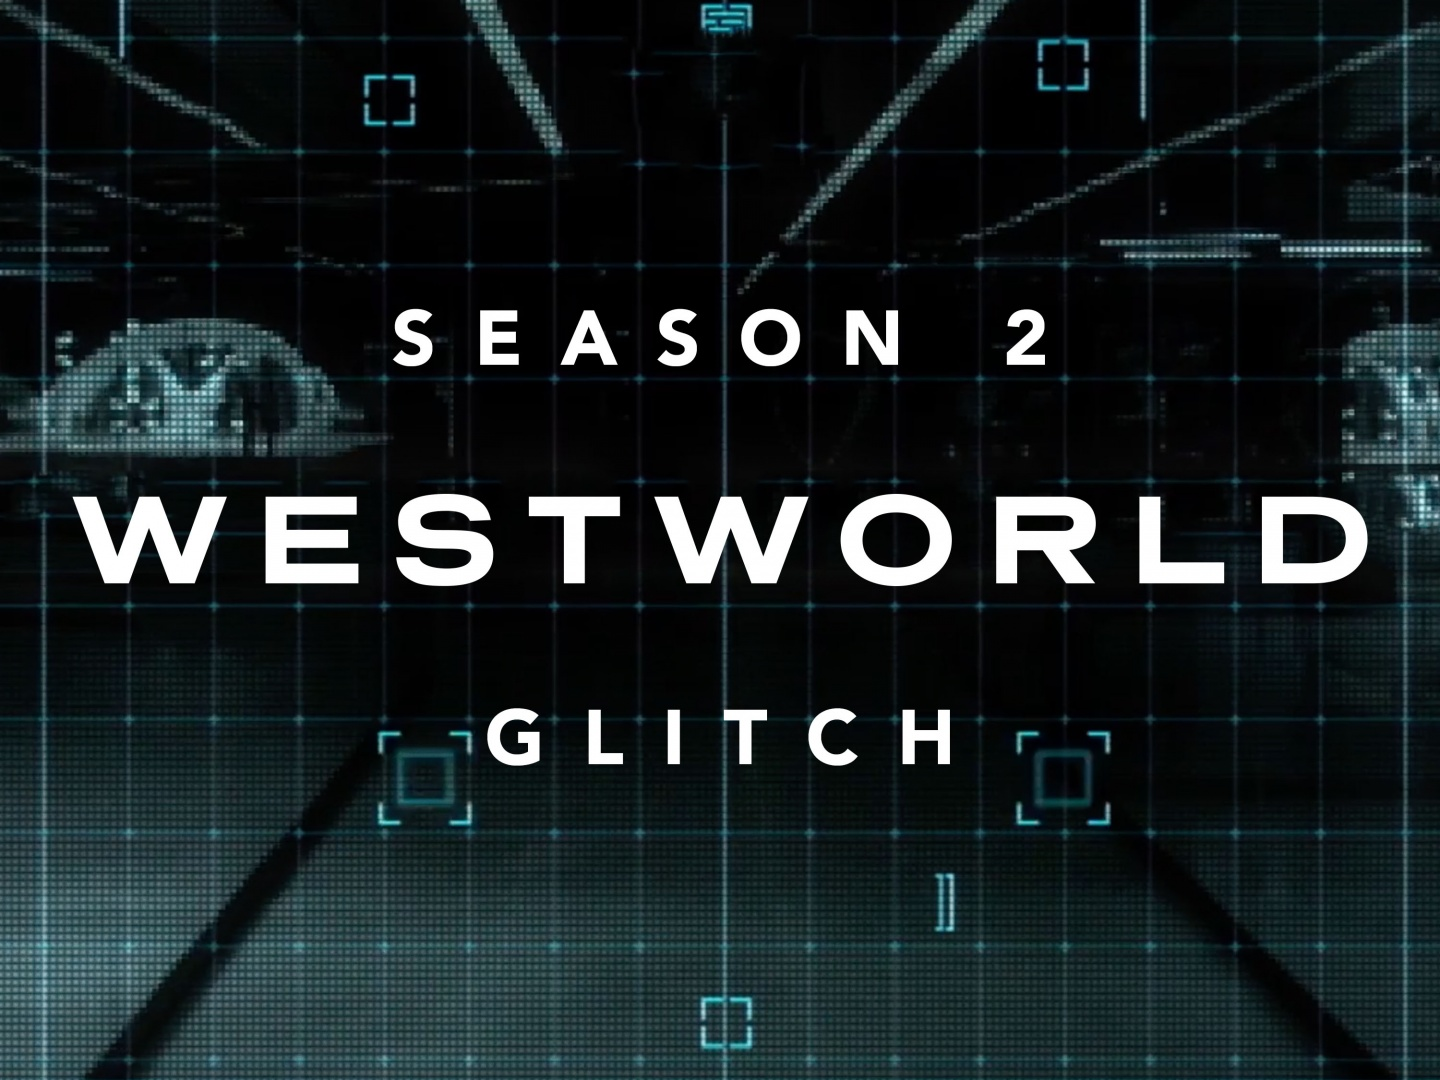 Westworld Season 2 Glitches Thumbnail